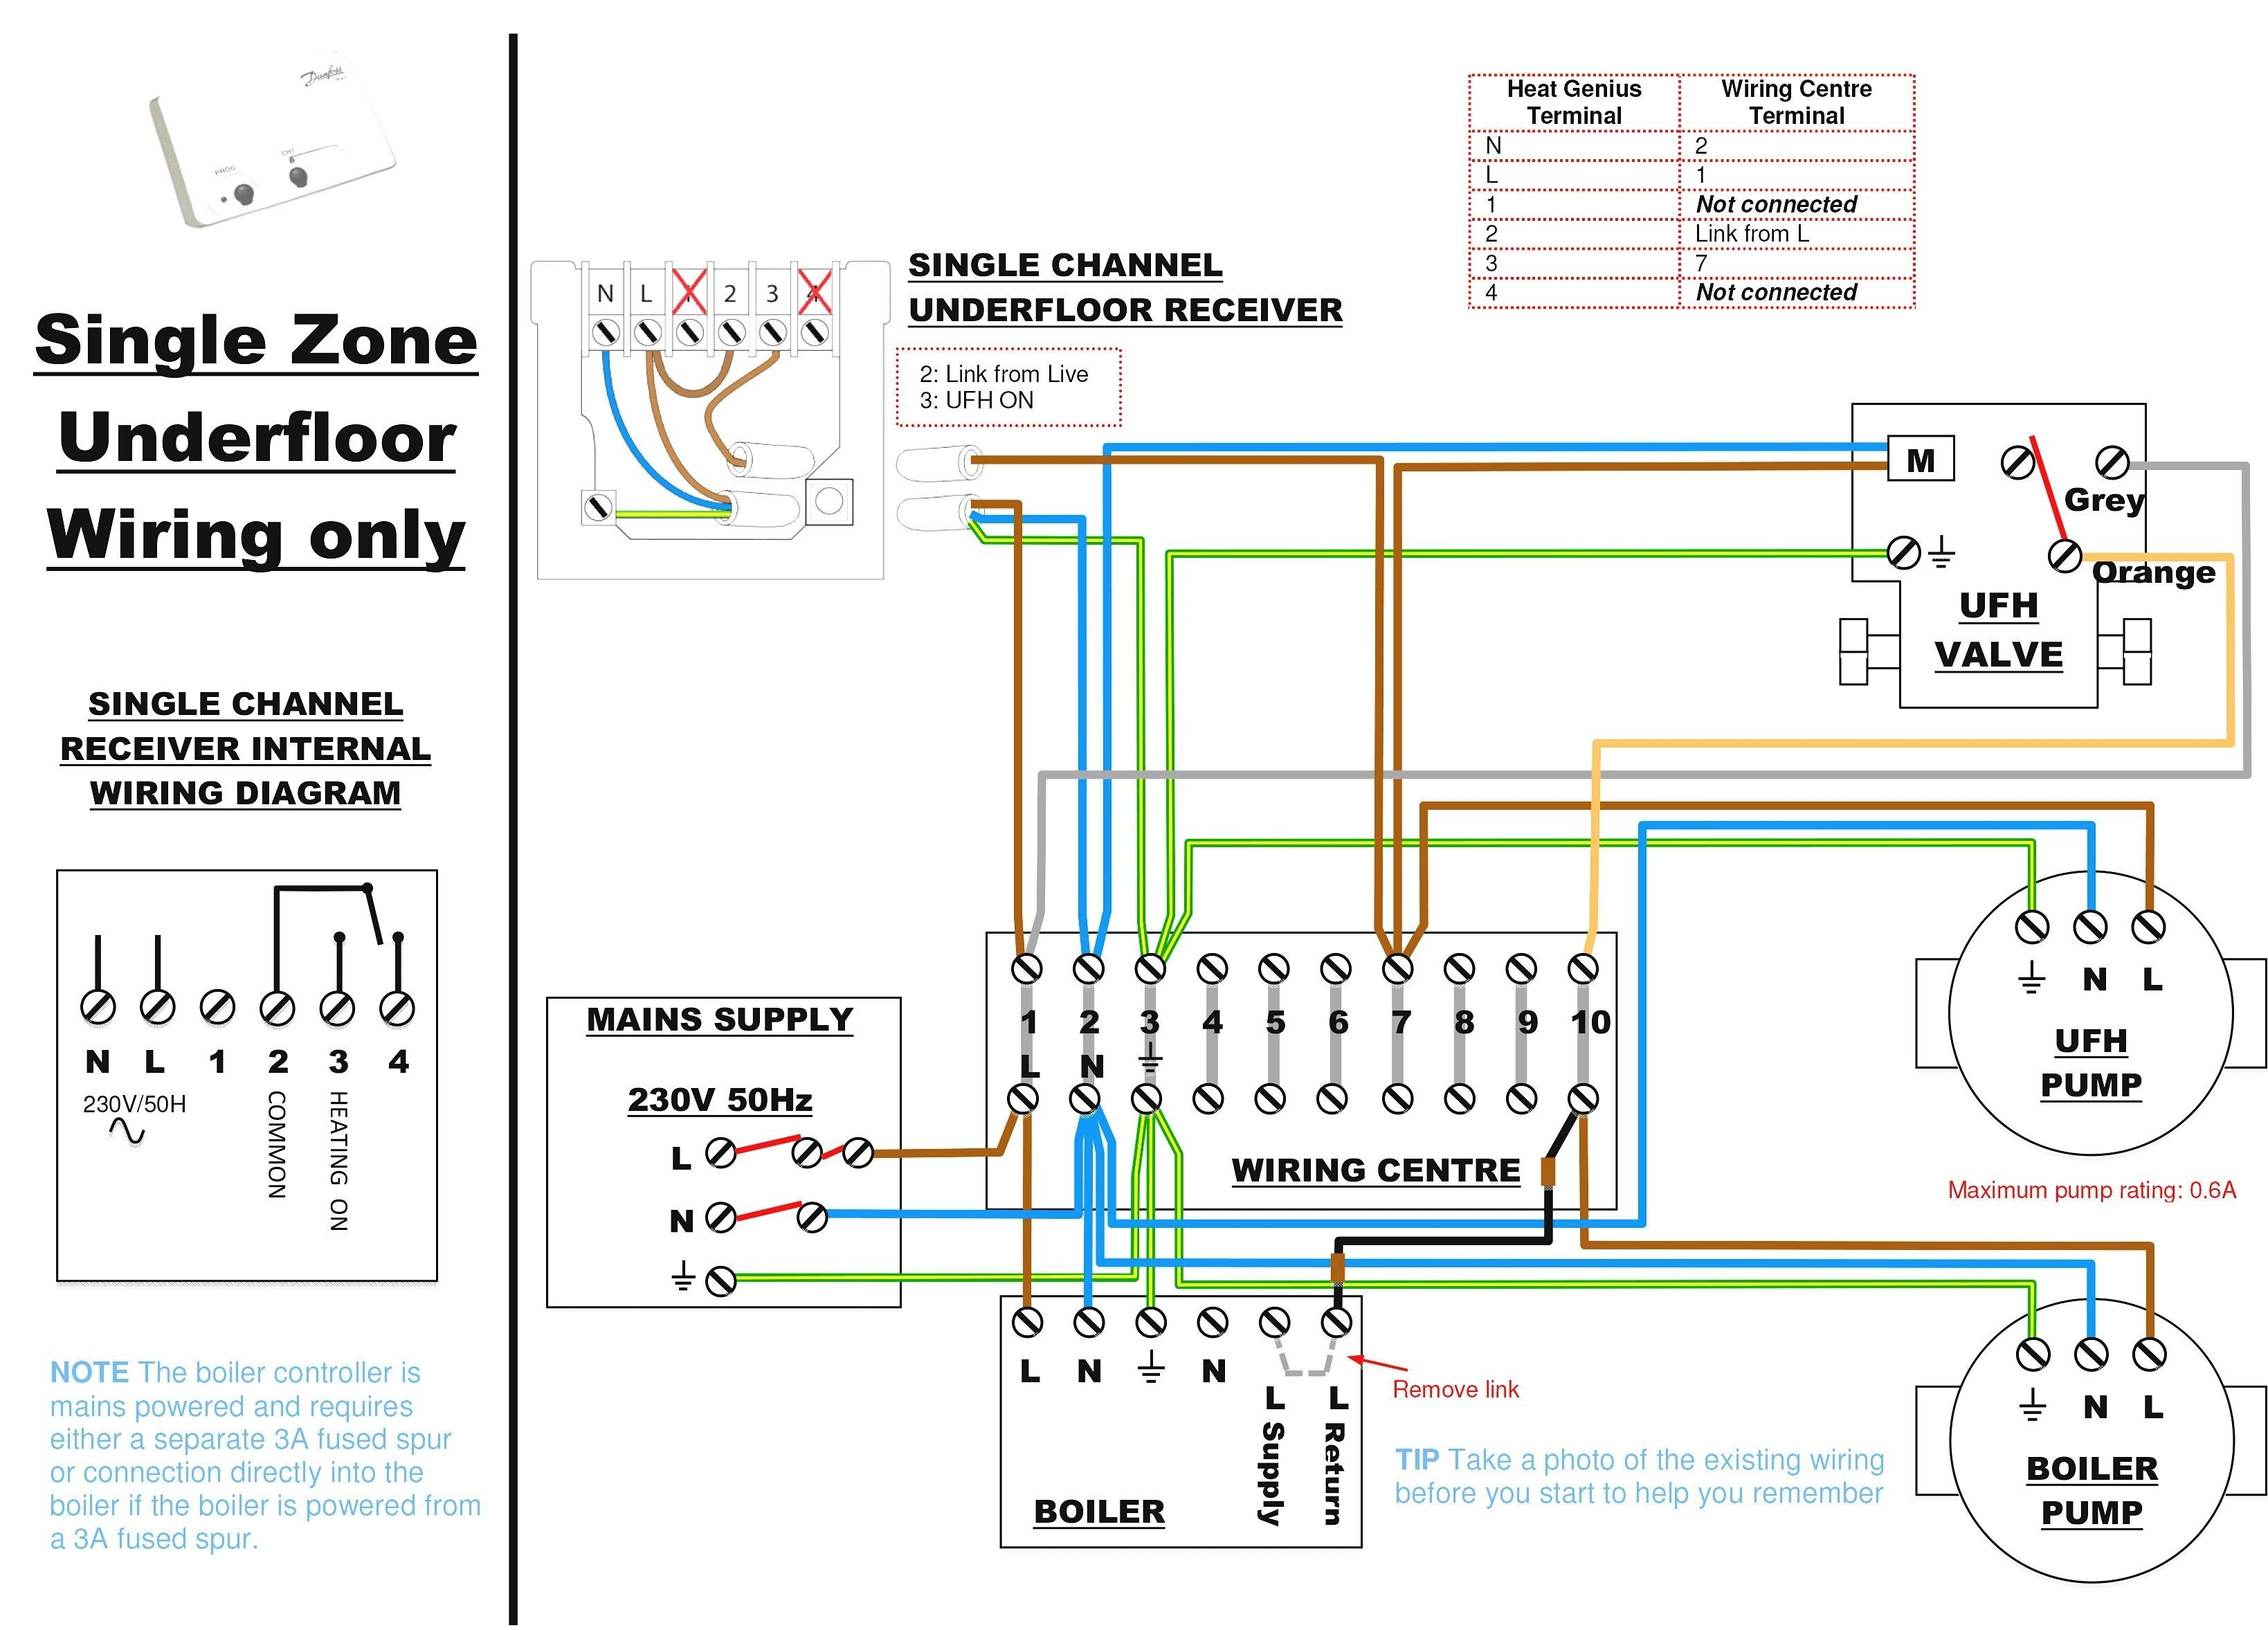 medium resolution of wiring diagram for wet underfloor heating wiring diagram centre wiring diagram for underfloor heating to combi boiler